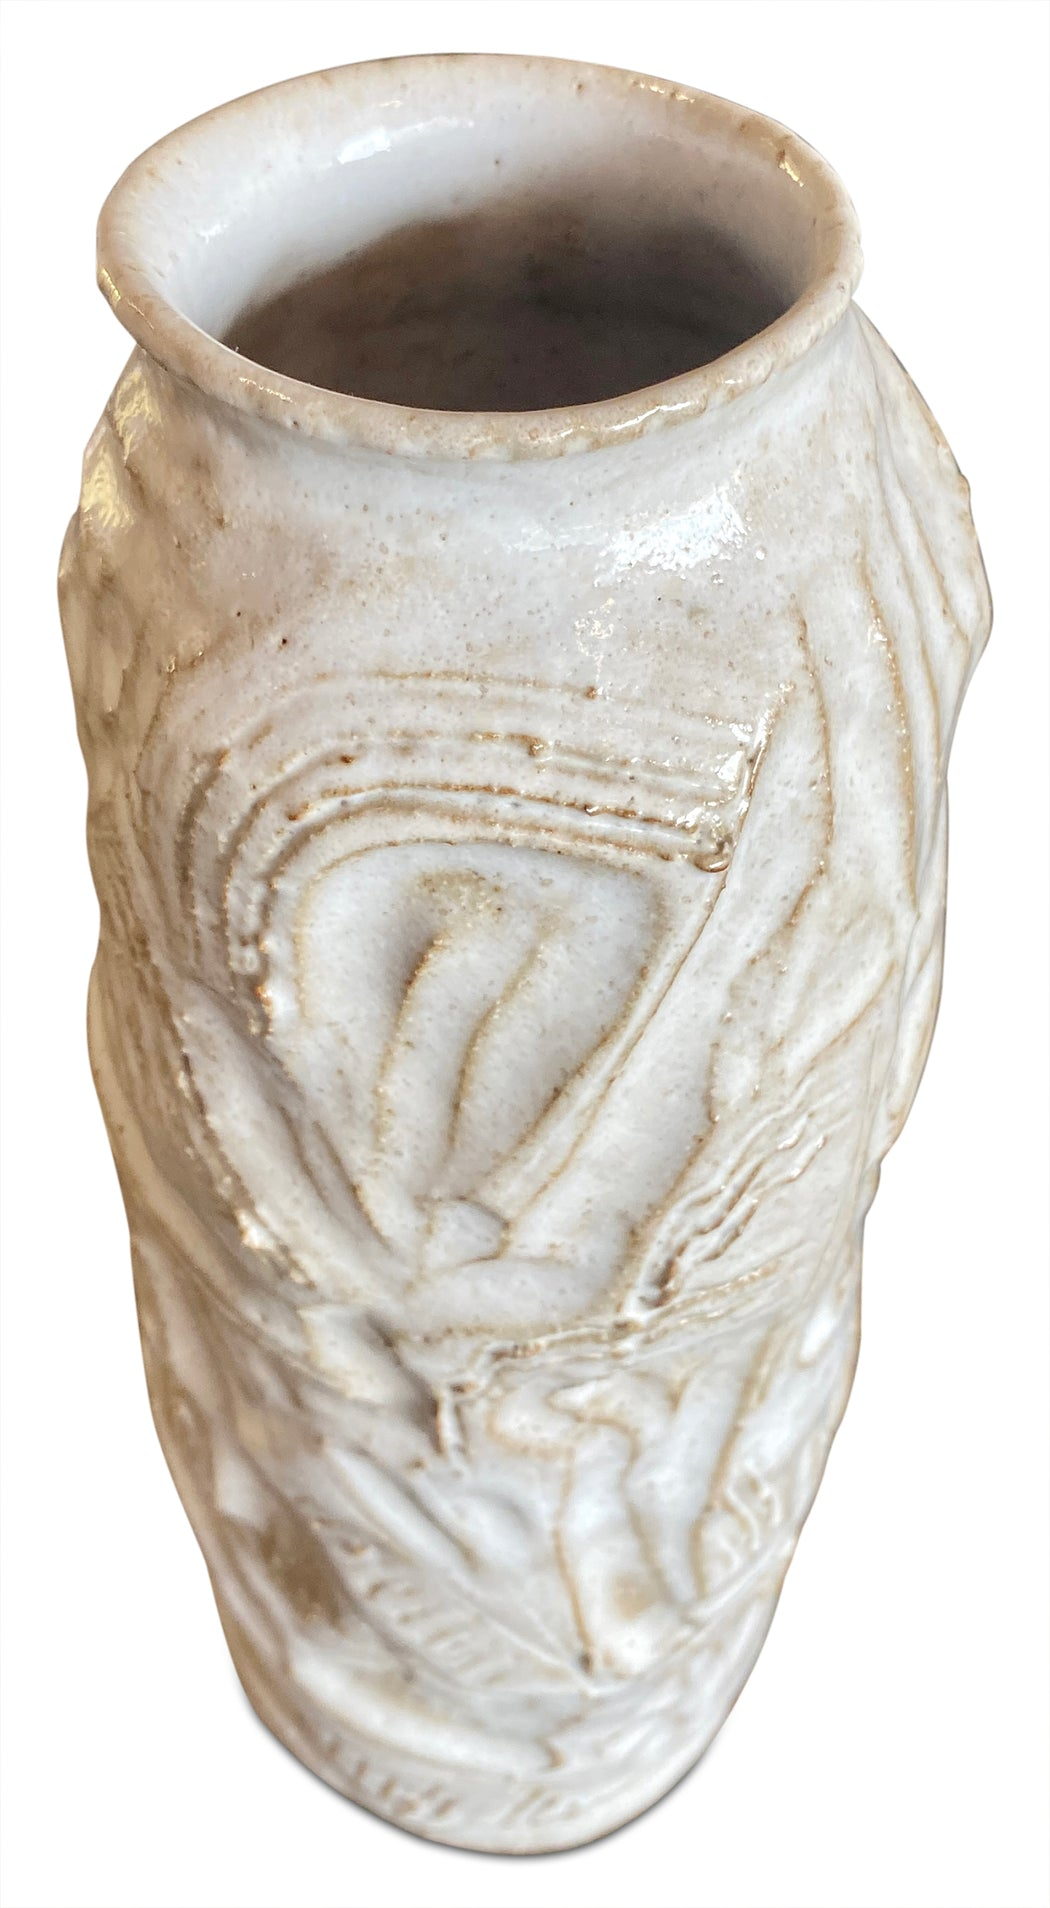 White Textured Abstract Ceramic Vase